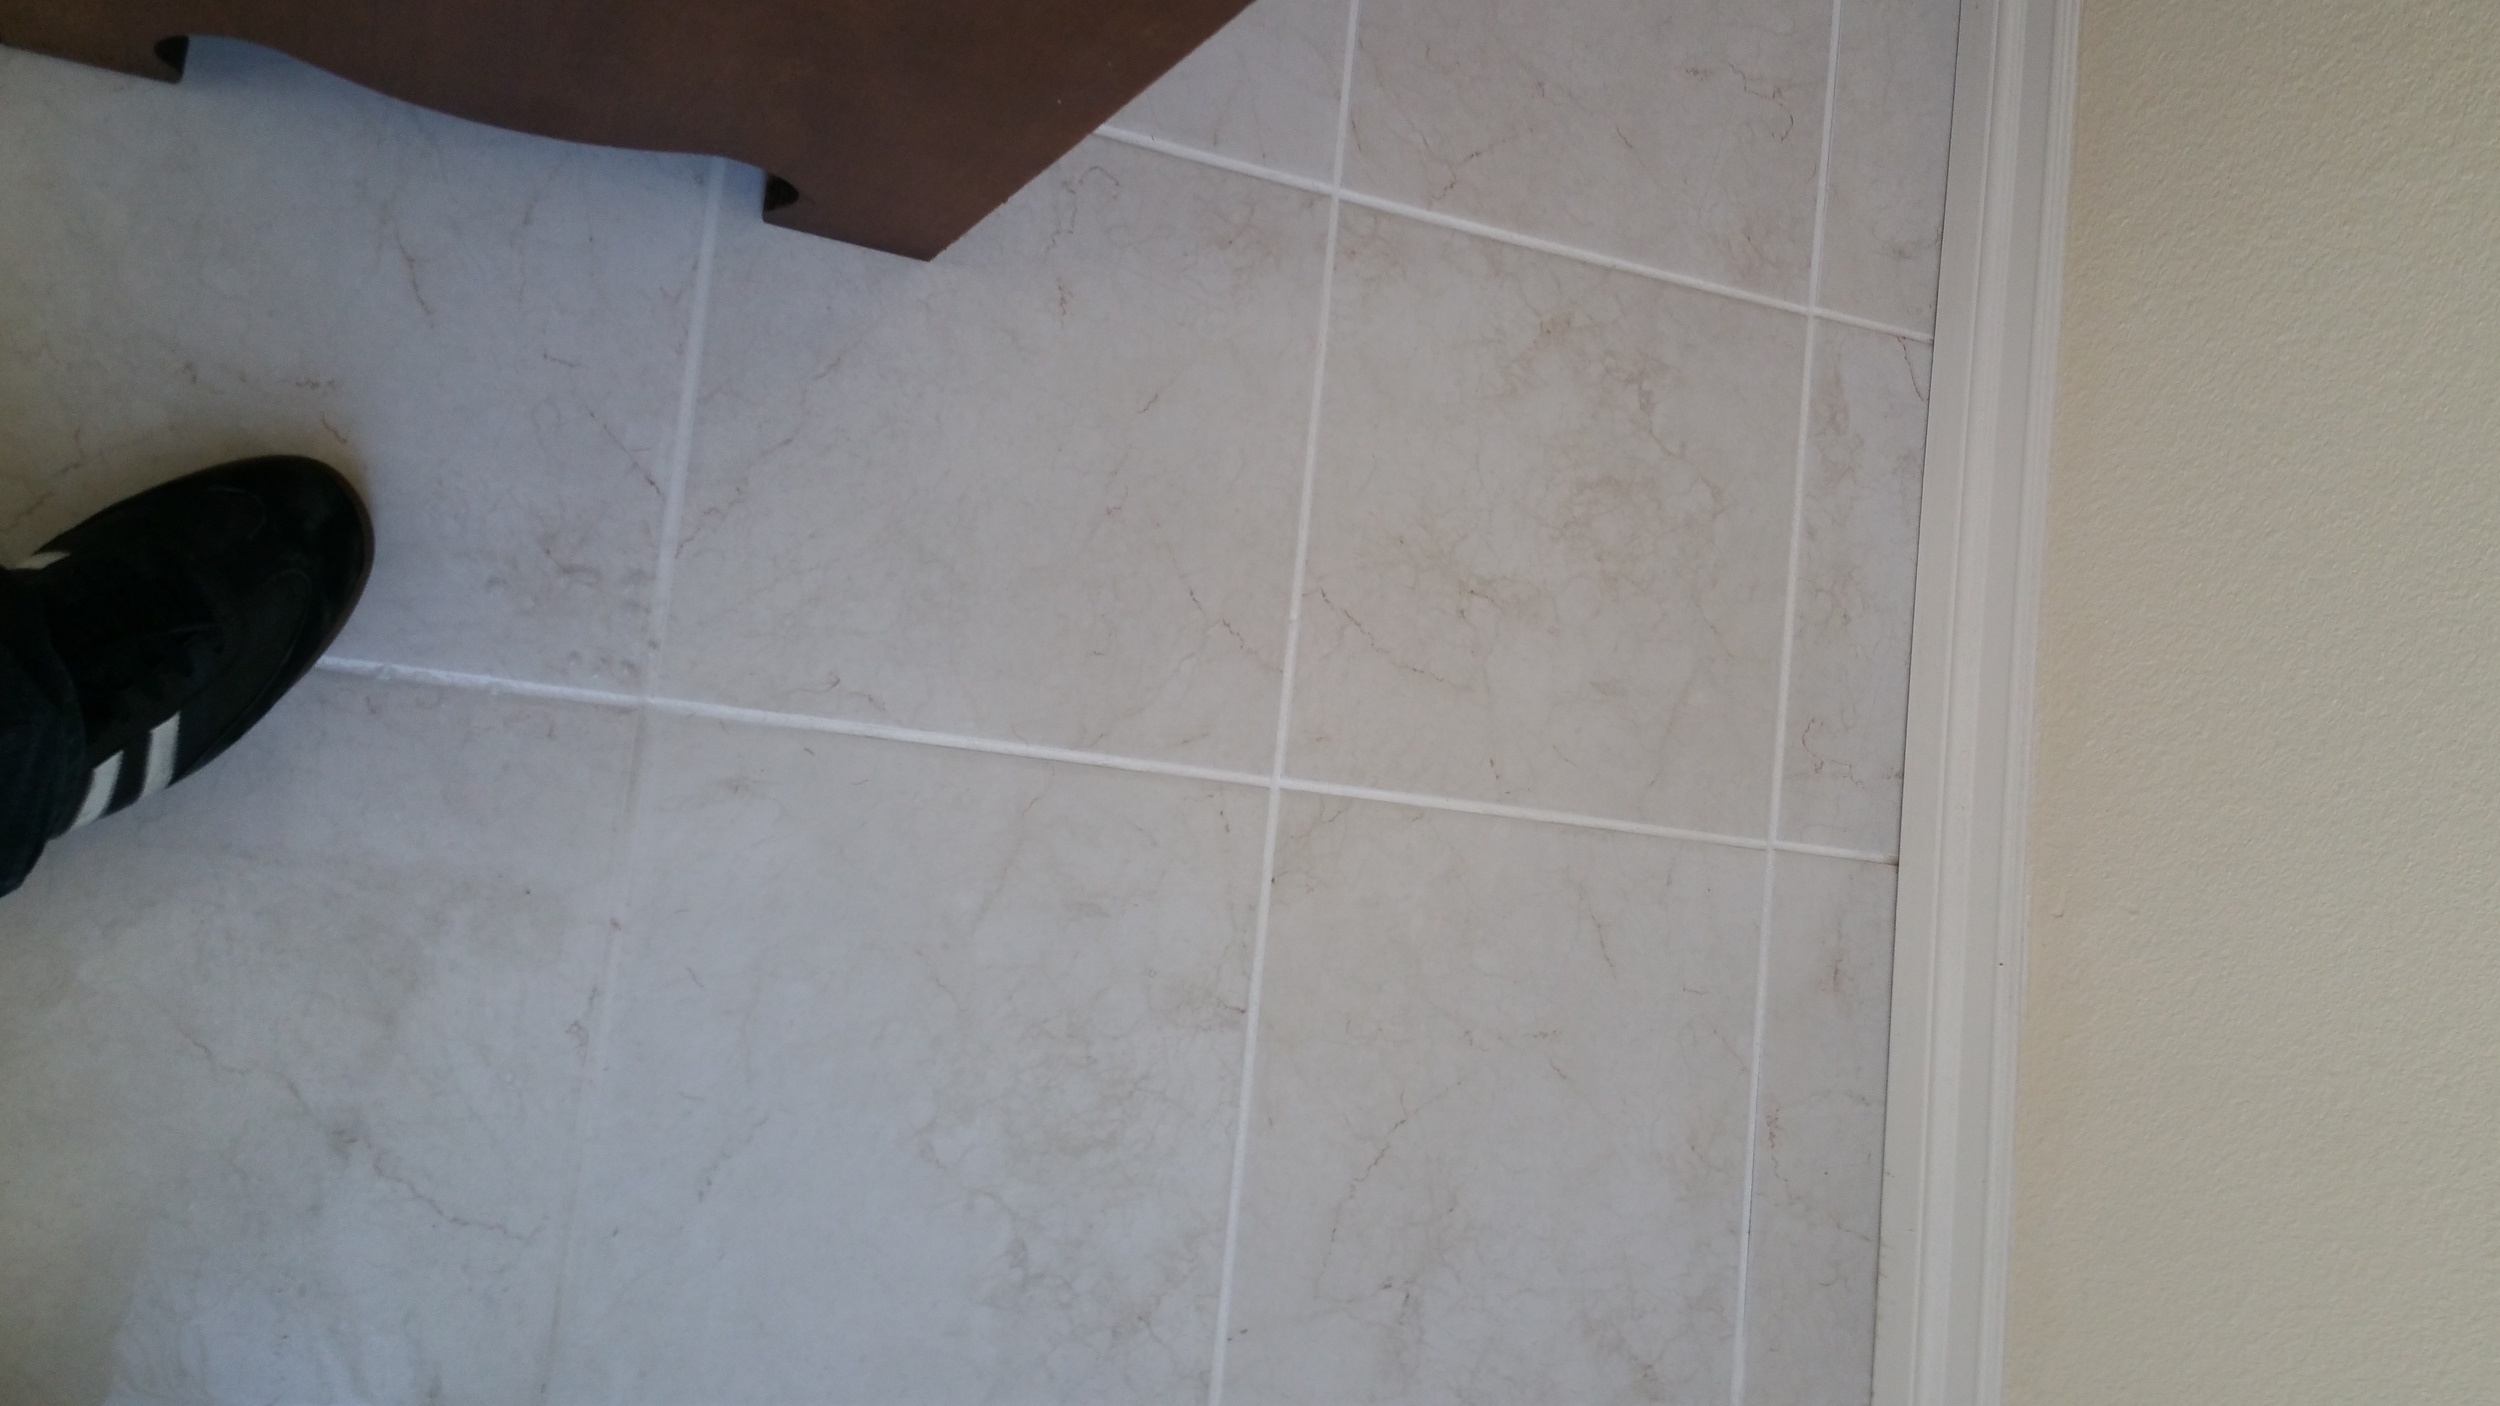 This is a tile that I cleaned, notice how great the grout looks